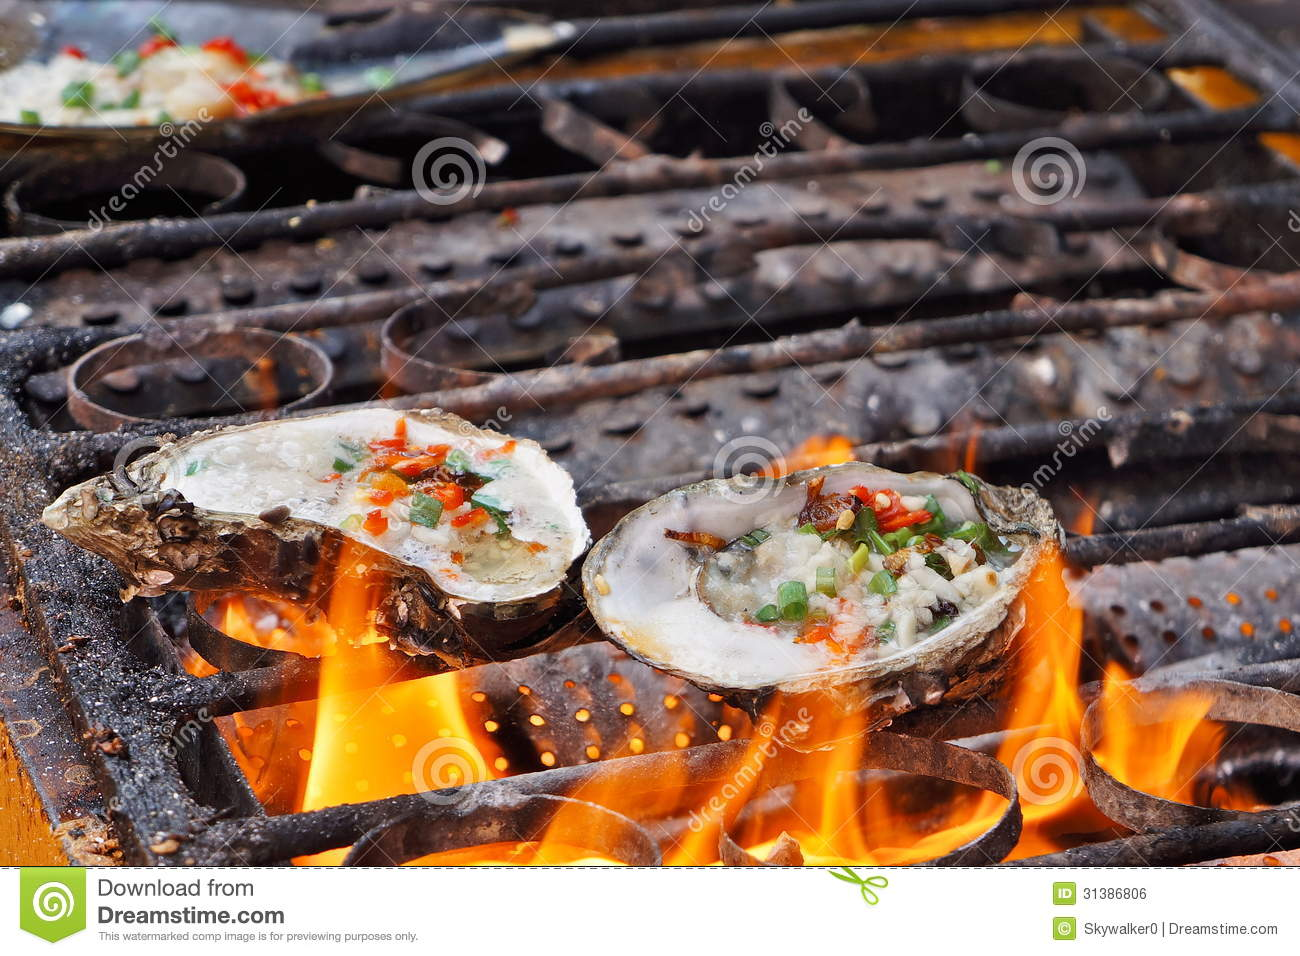 Roast Oyster Royalty Free Stock Image - Image: 31386806